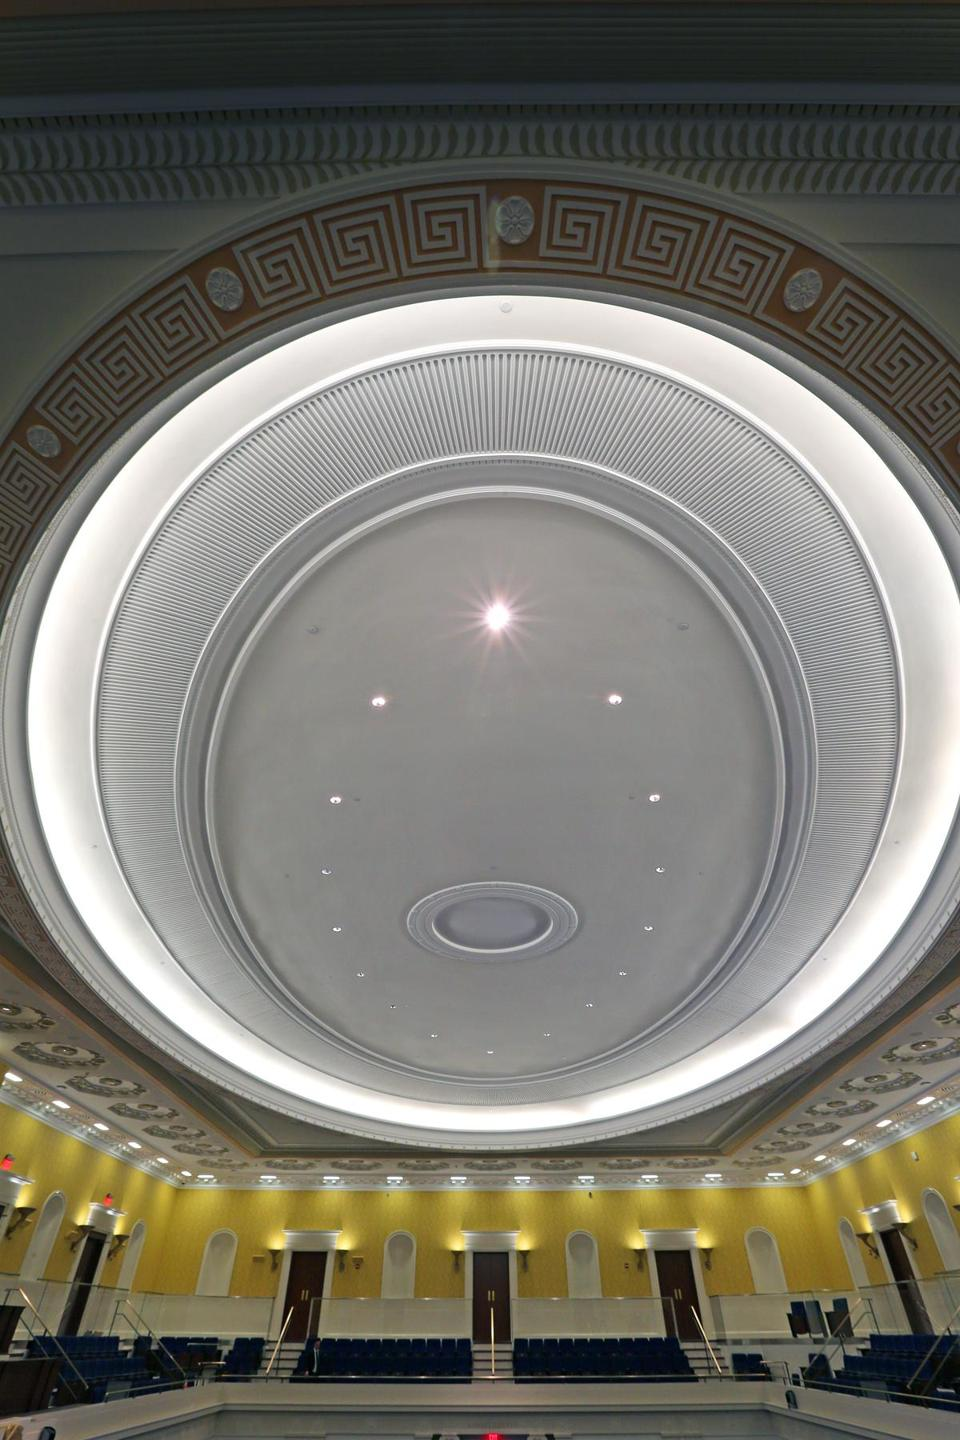 BOSTON, MA - 3/06/2015: Ceiling inside the Senate Chamber at The Ted Kennedy Institute (David L Ryan/Globe Staff Photo) SECTION: MAGAZINE TOPIC 0329SenatePhoto(2)